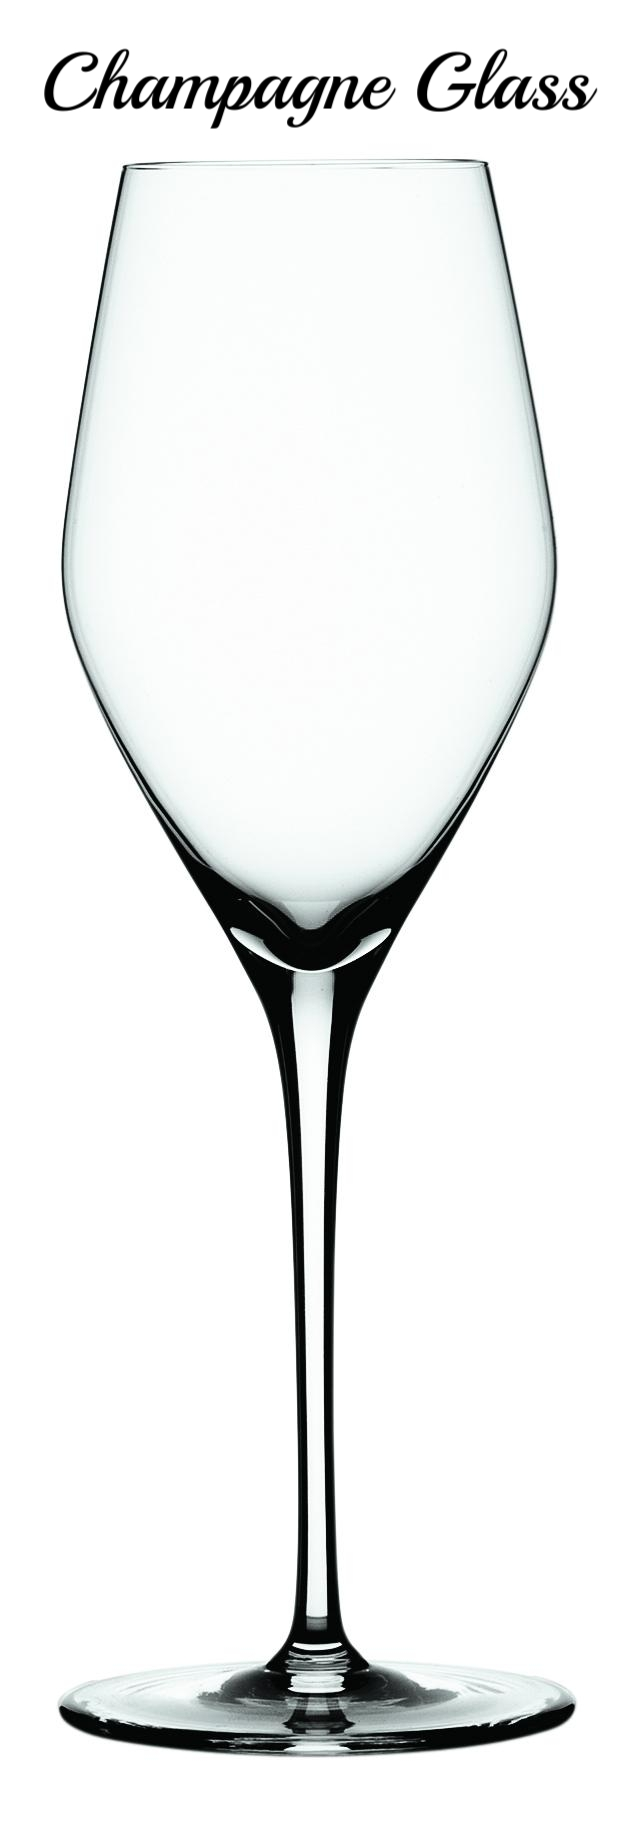 Authentis Champ Glass 4408029.jpg